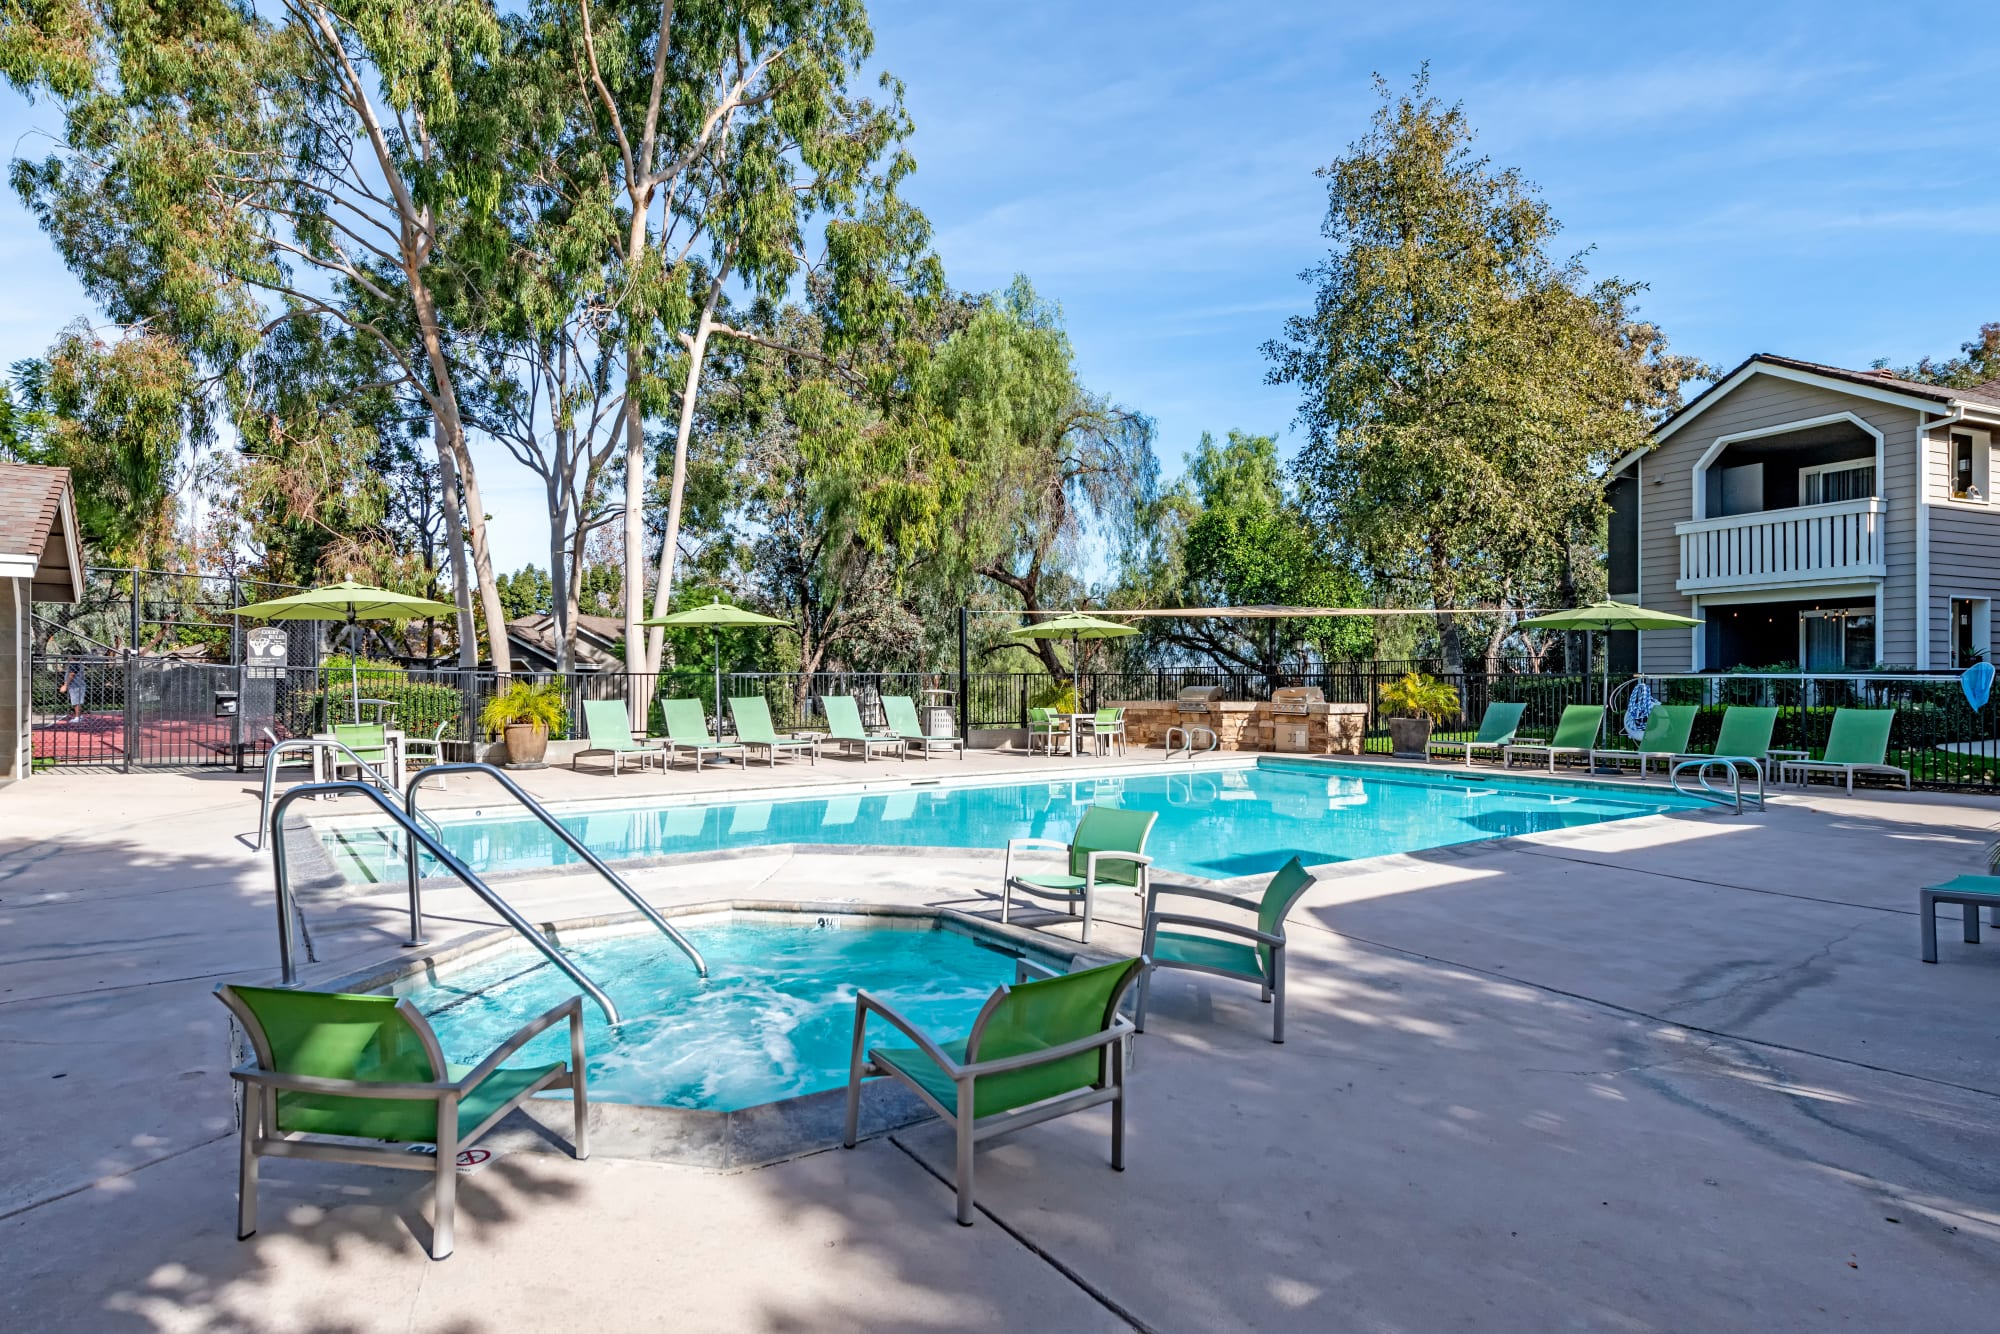 Sparkling swimming pool at Village Oaks in Chino Hills, California